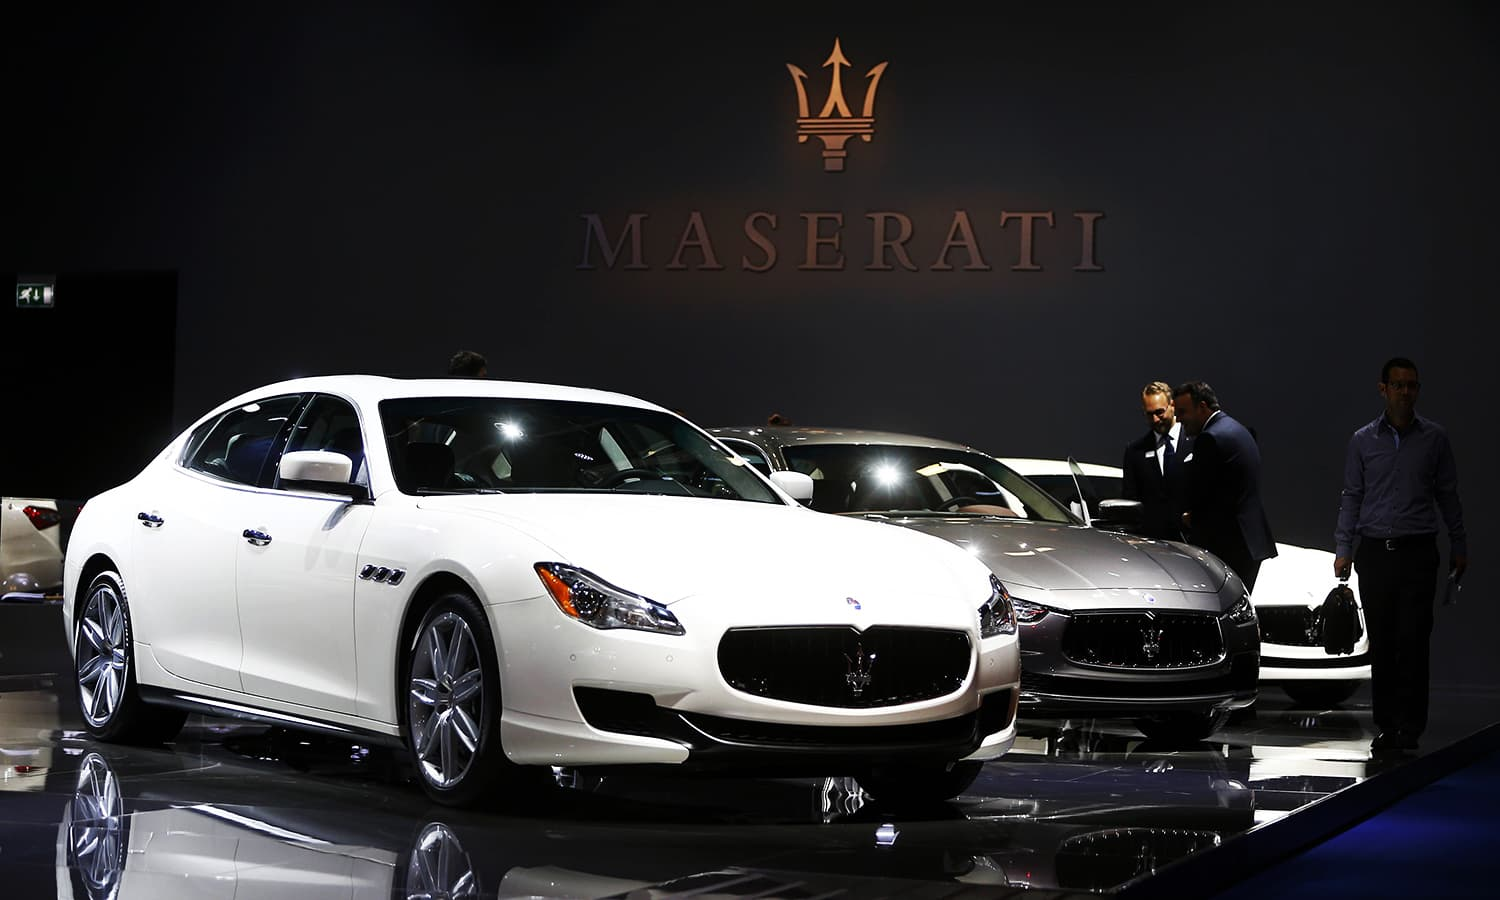 Maserati Quattroporte cars are pictured during the media day. ─ Reuters